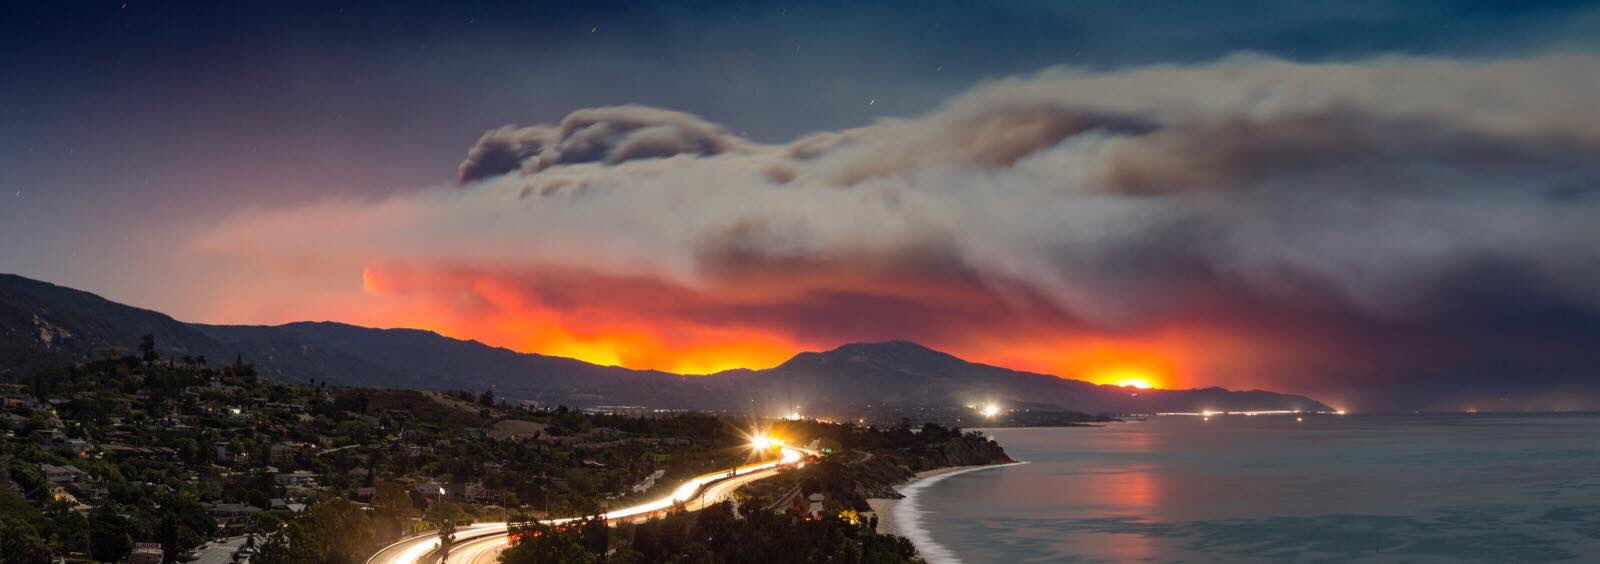 Southern California is on Fire Again - And This One Means Business